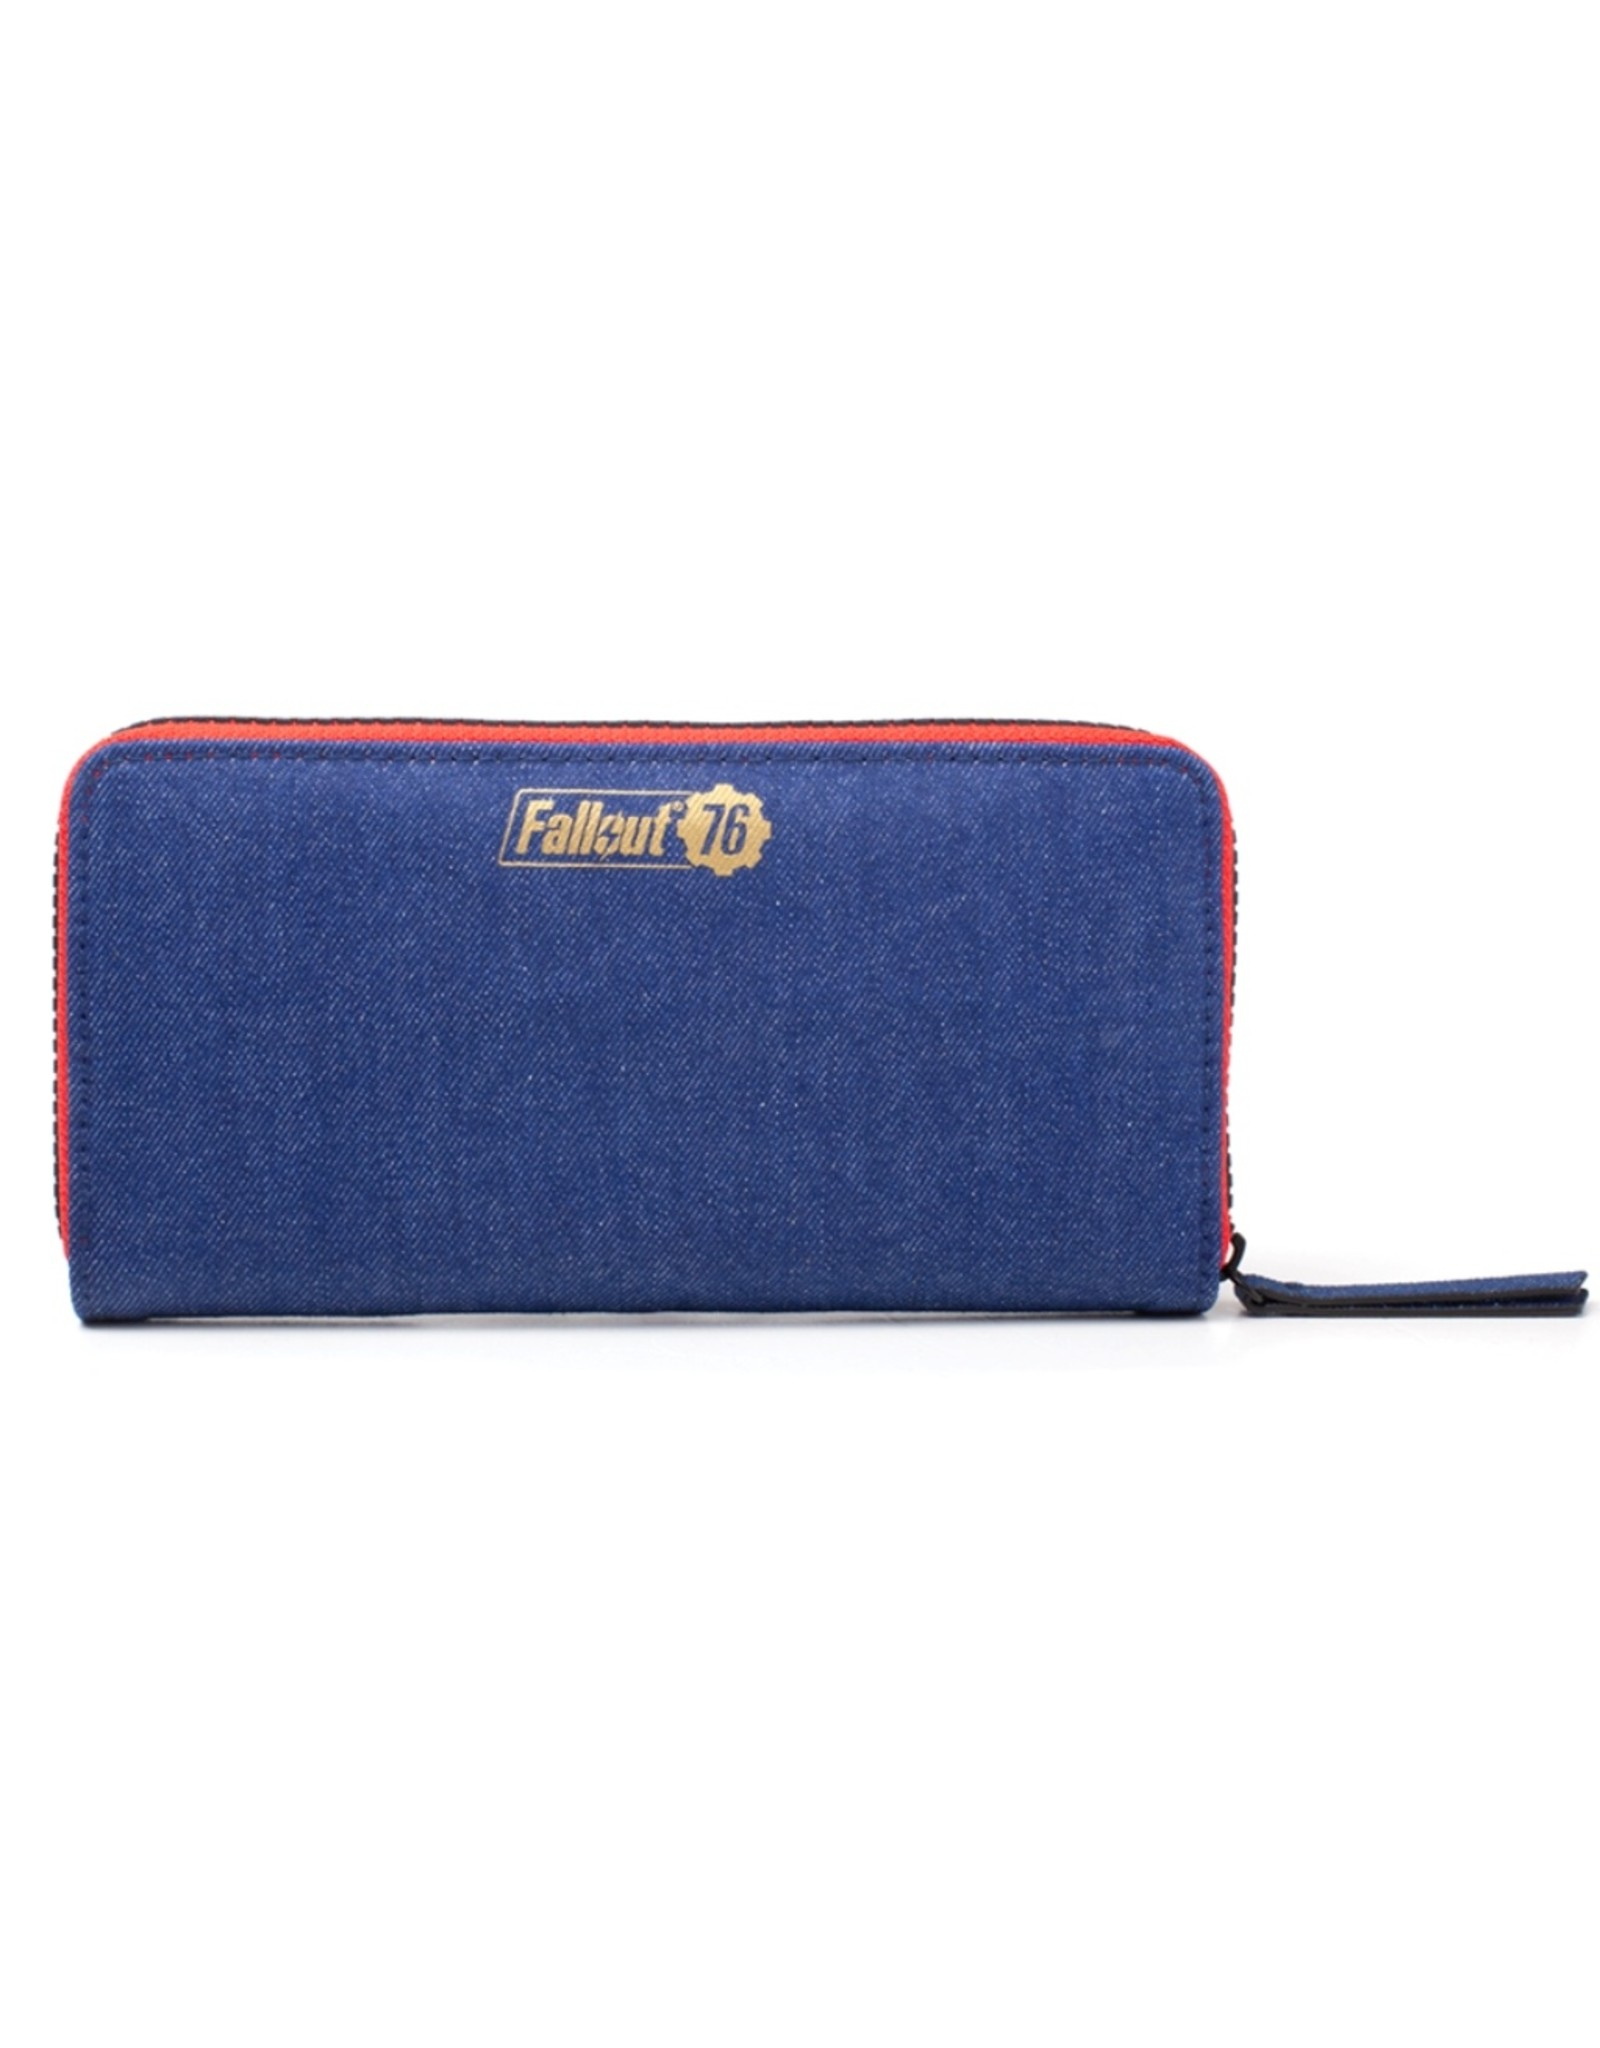 fallout Merchandise wallets - Fallout Vault 76 Denim wallet with patches